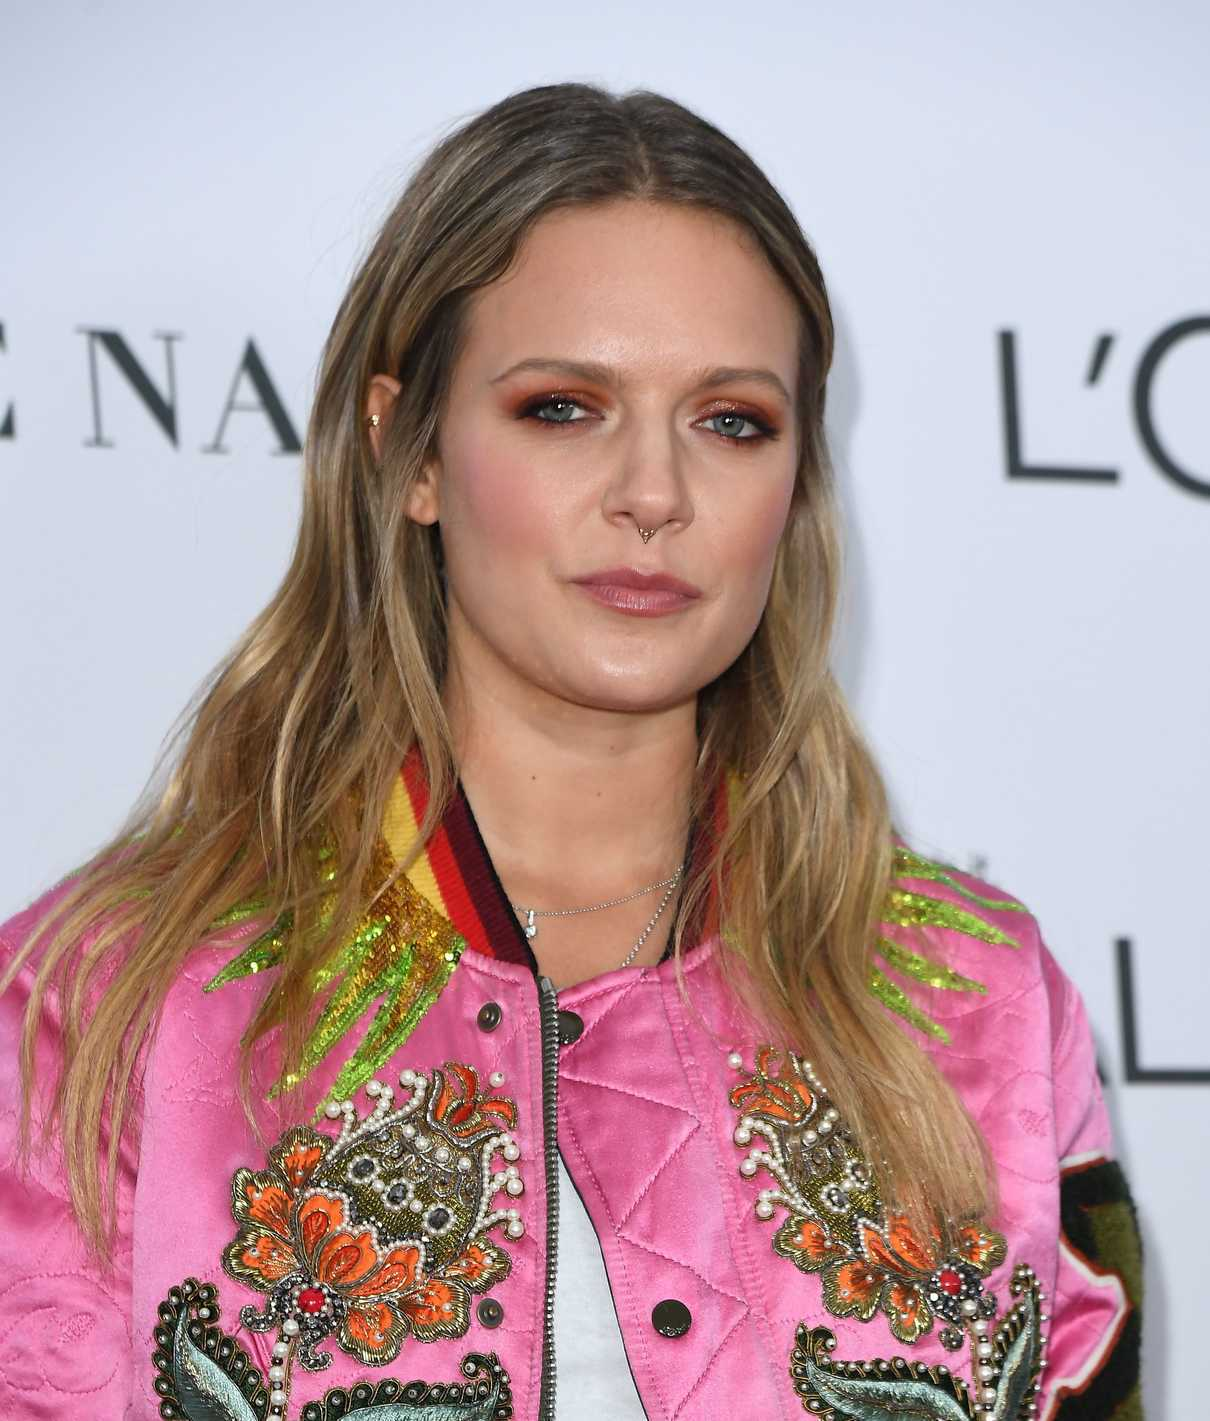 Tove Lo at 2017 Glamour Women of the Year Awards in NYC 11/13/2017-4